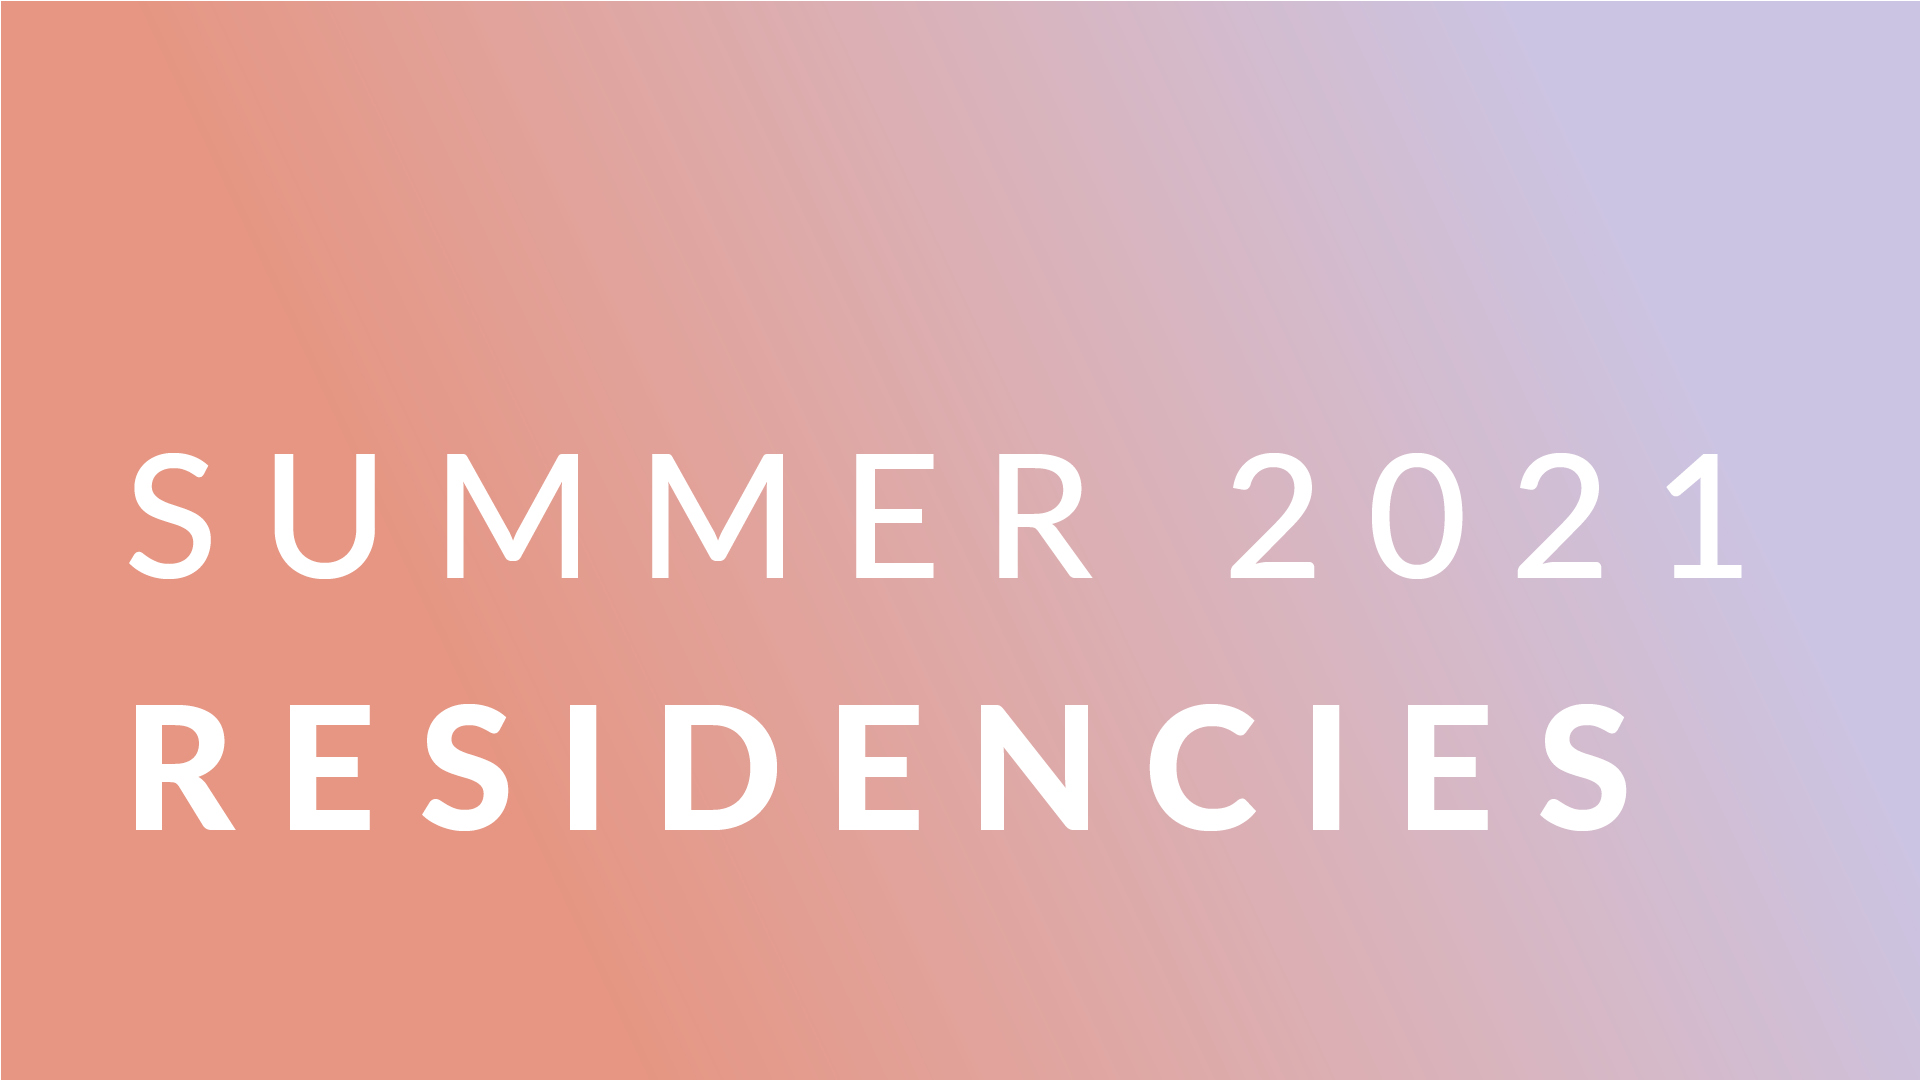 A coloured background, fading from peachy pink to pale lilac. In white text it says: SUMMER 2021 RESIDENCIES